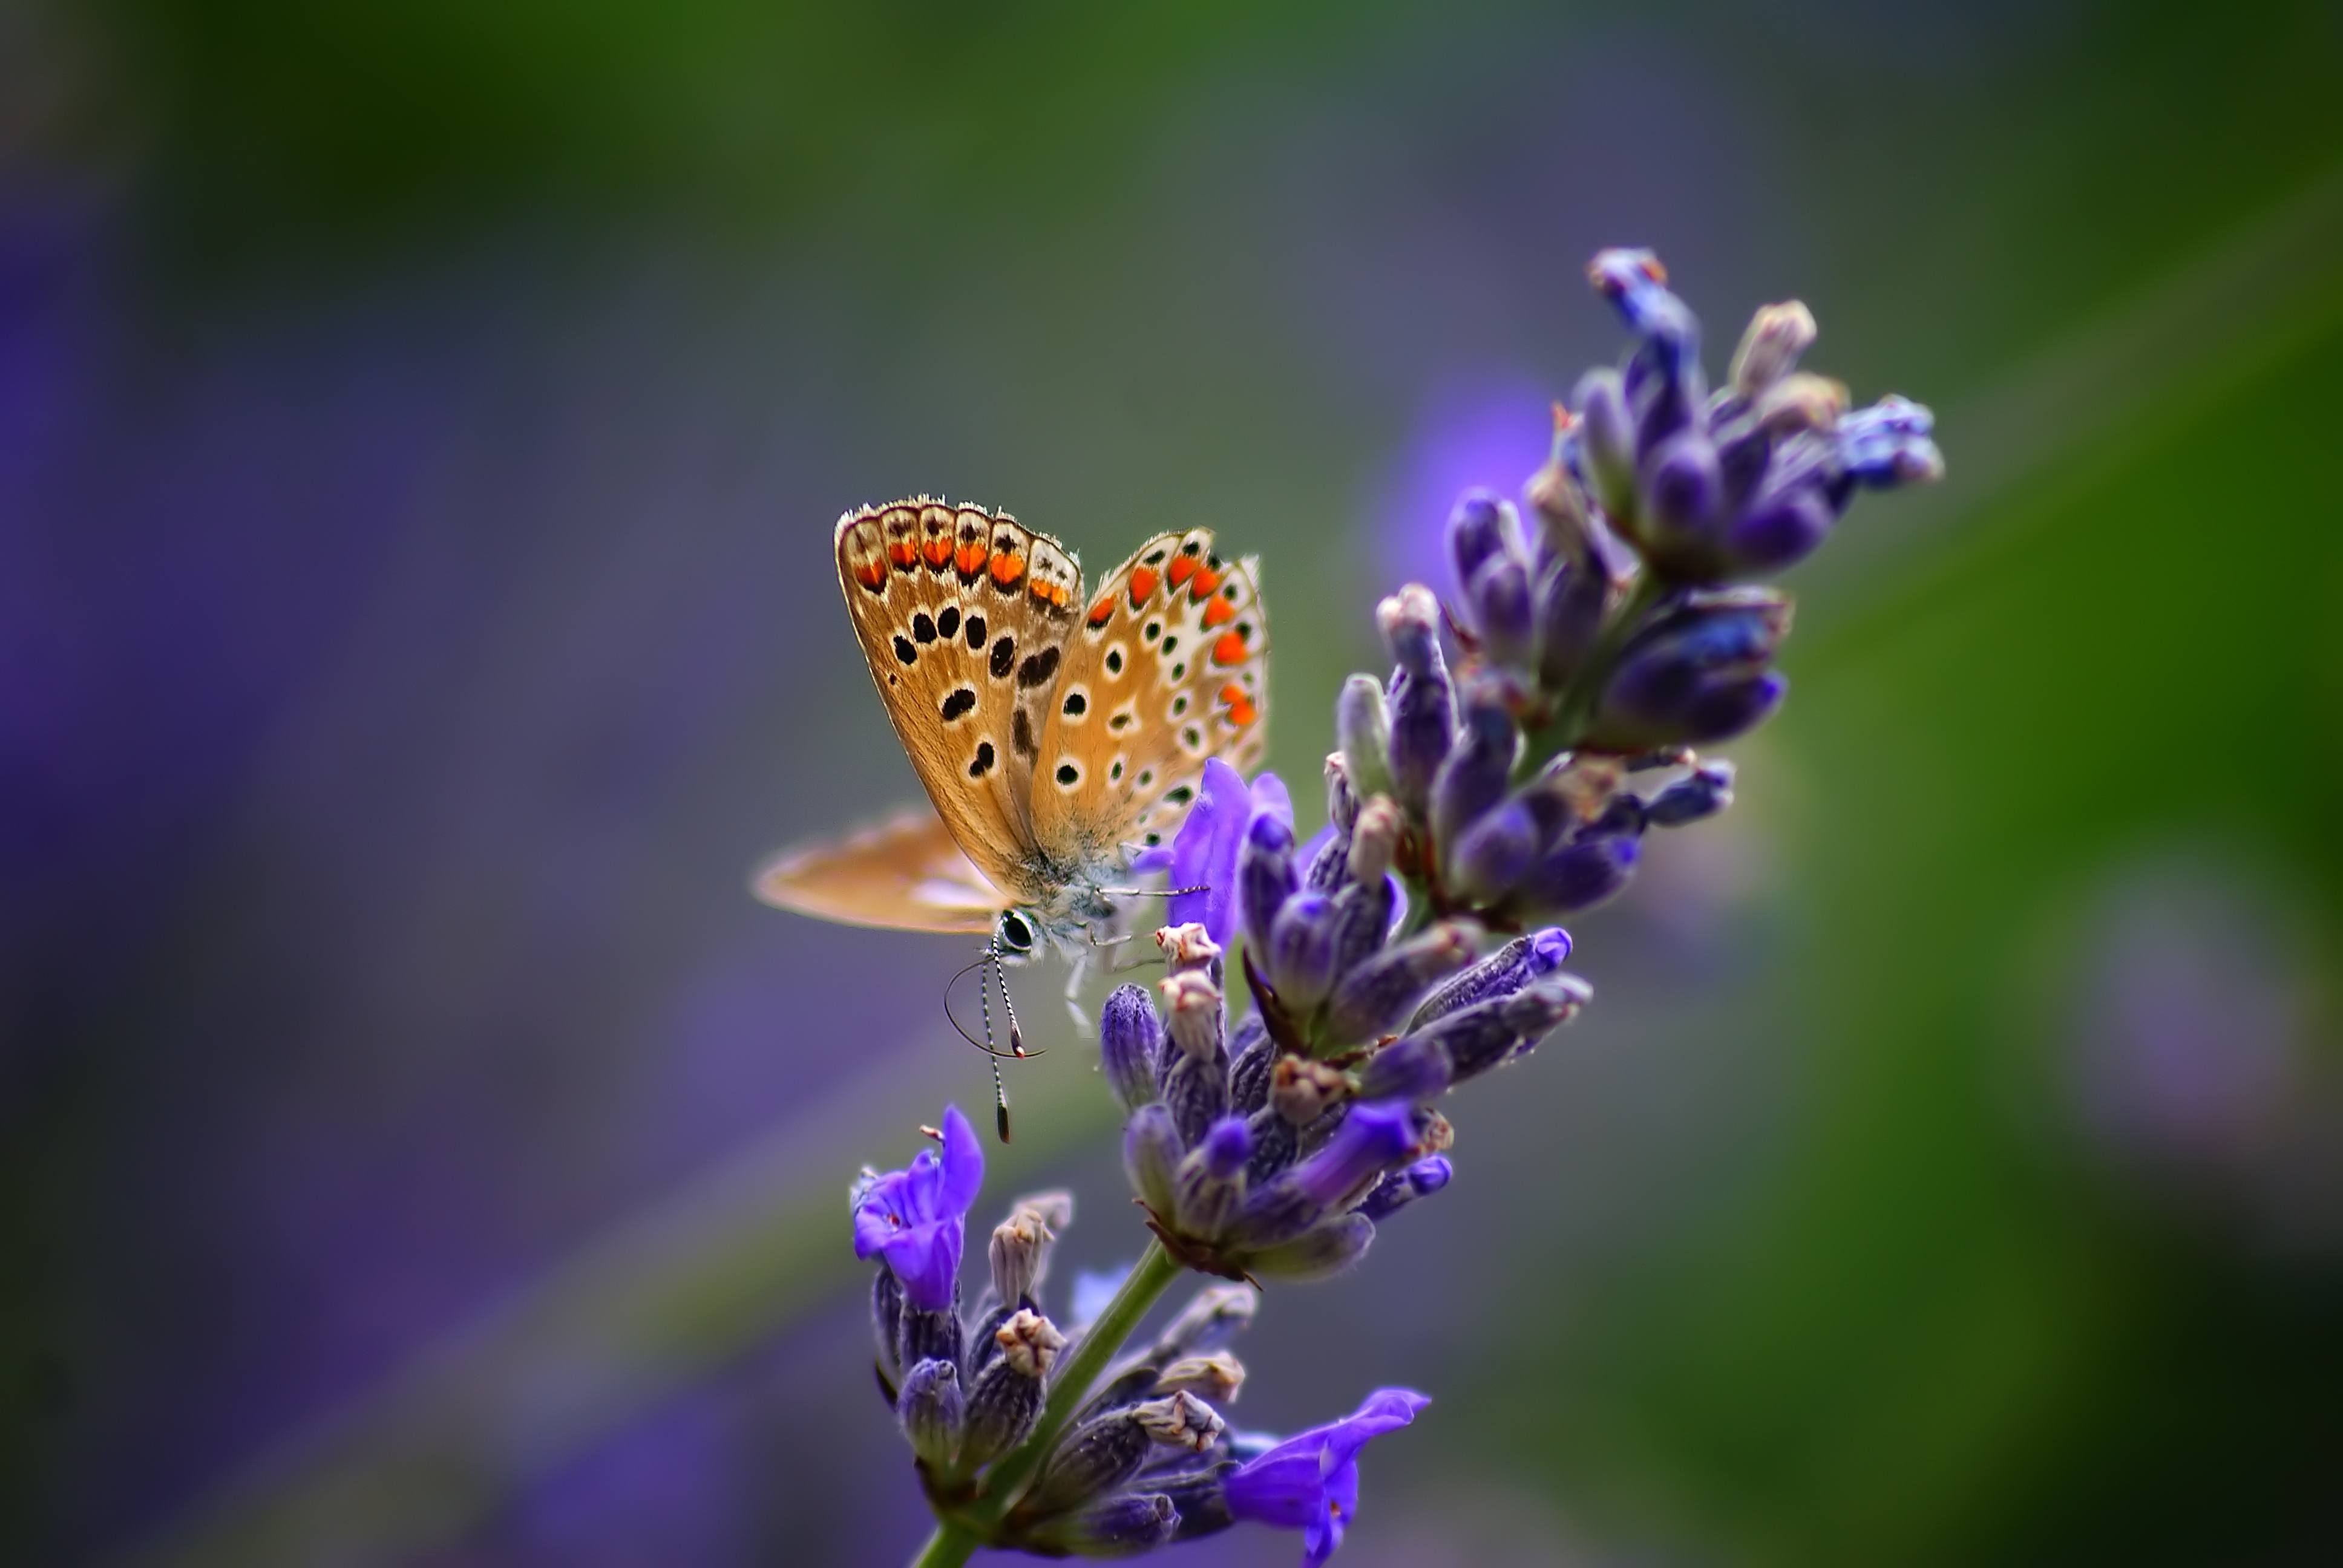 153428 download wallpaper Macro, Butterfly, Flower, Light Coloured, Light, Background screensavers and pictures for free